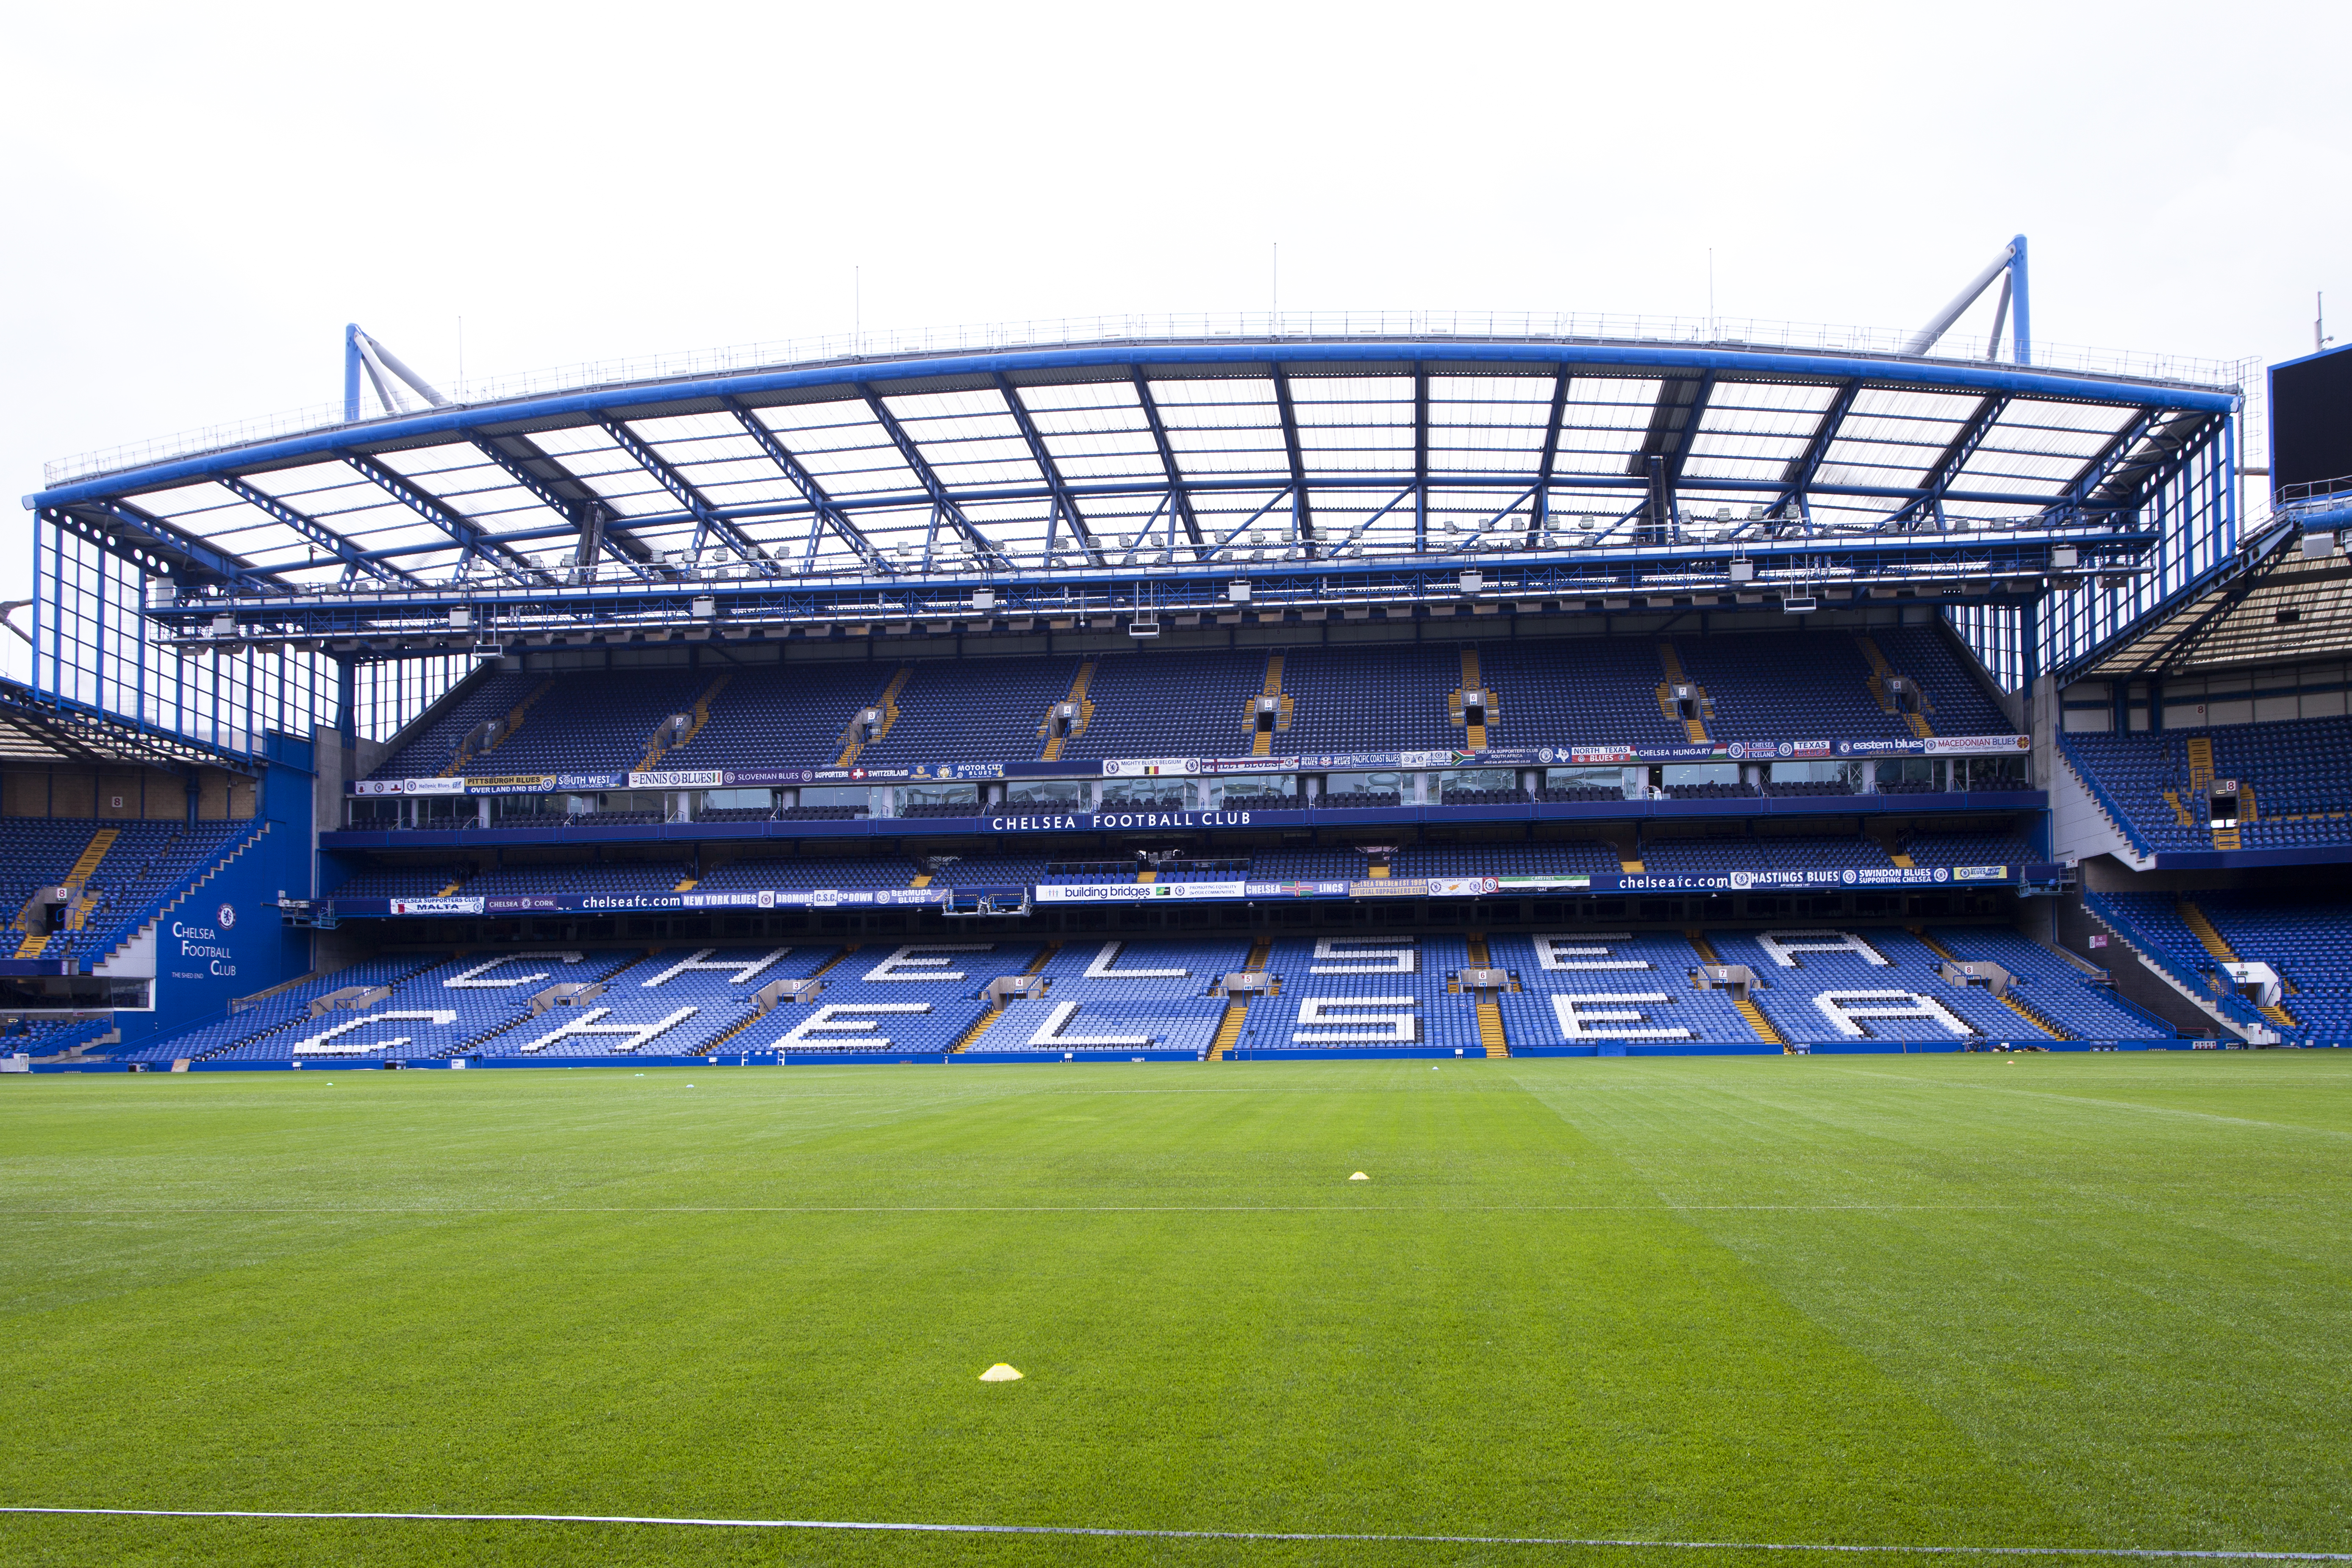 Philips equips Chelsea Football Club to become the world's